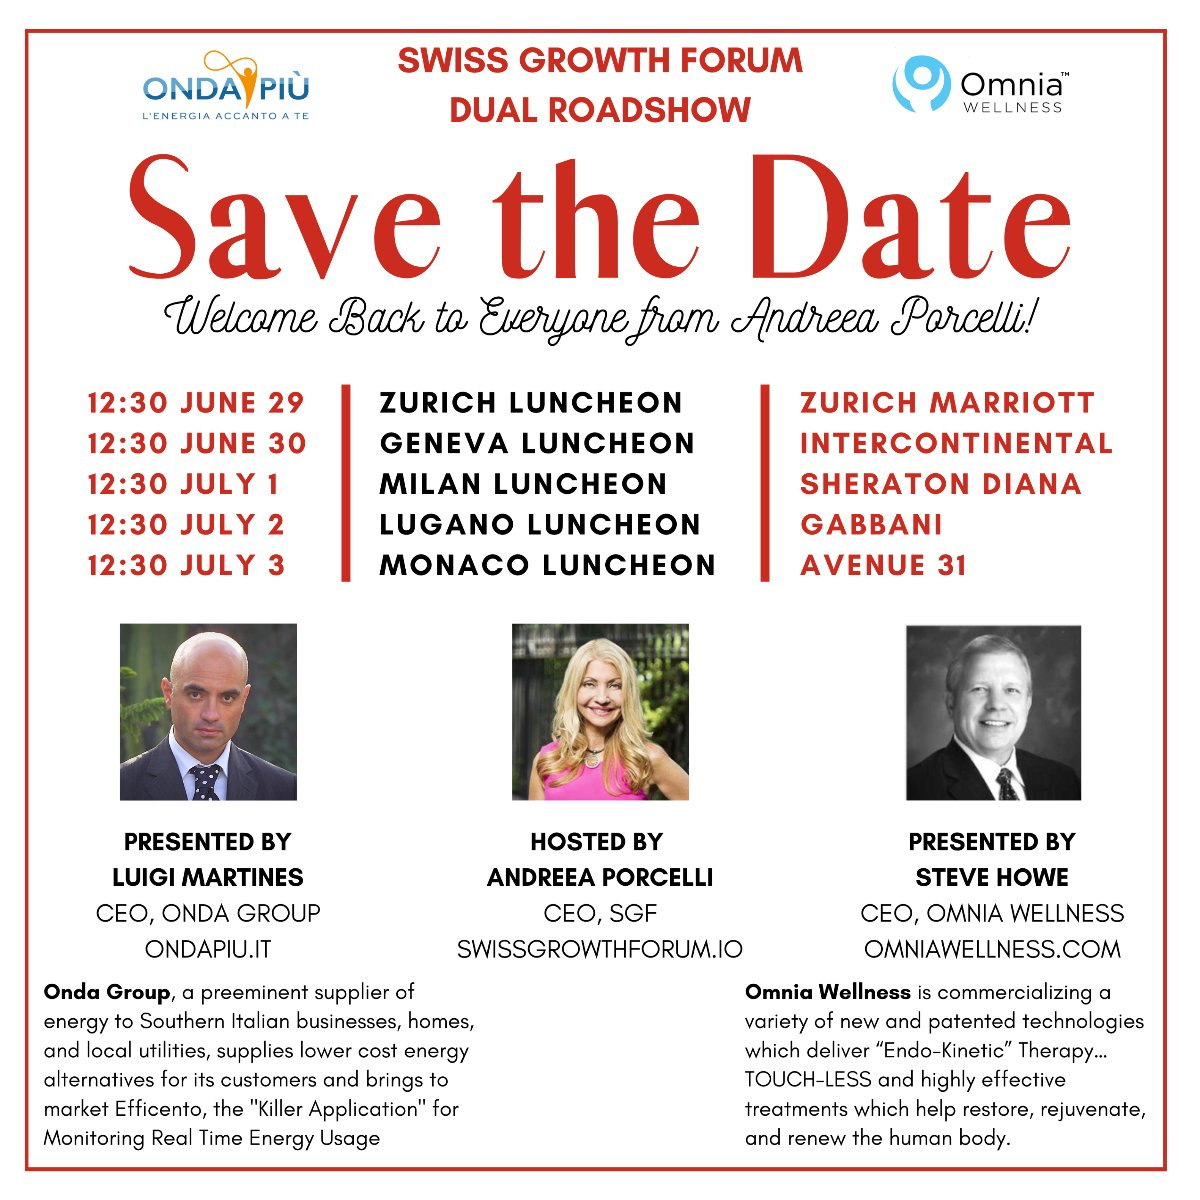 Andreea Porcelli Cordially Invites you to the SGF Roadshow for Omnia Wellness June 29th through July 3rd!  https://t.co/ROWgNENo2i  #NewYork #Covid_19 #QuarantineLife #business #lockdown #updates #cybersecurity #investing #stocks  #coronavirus #nasdaq #MeganFox #Hailey #PizzaHut https://t.co/8qXT1ZgRr2